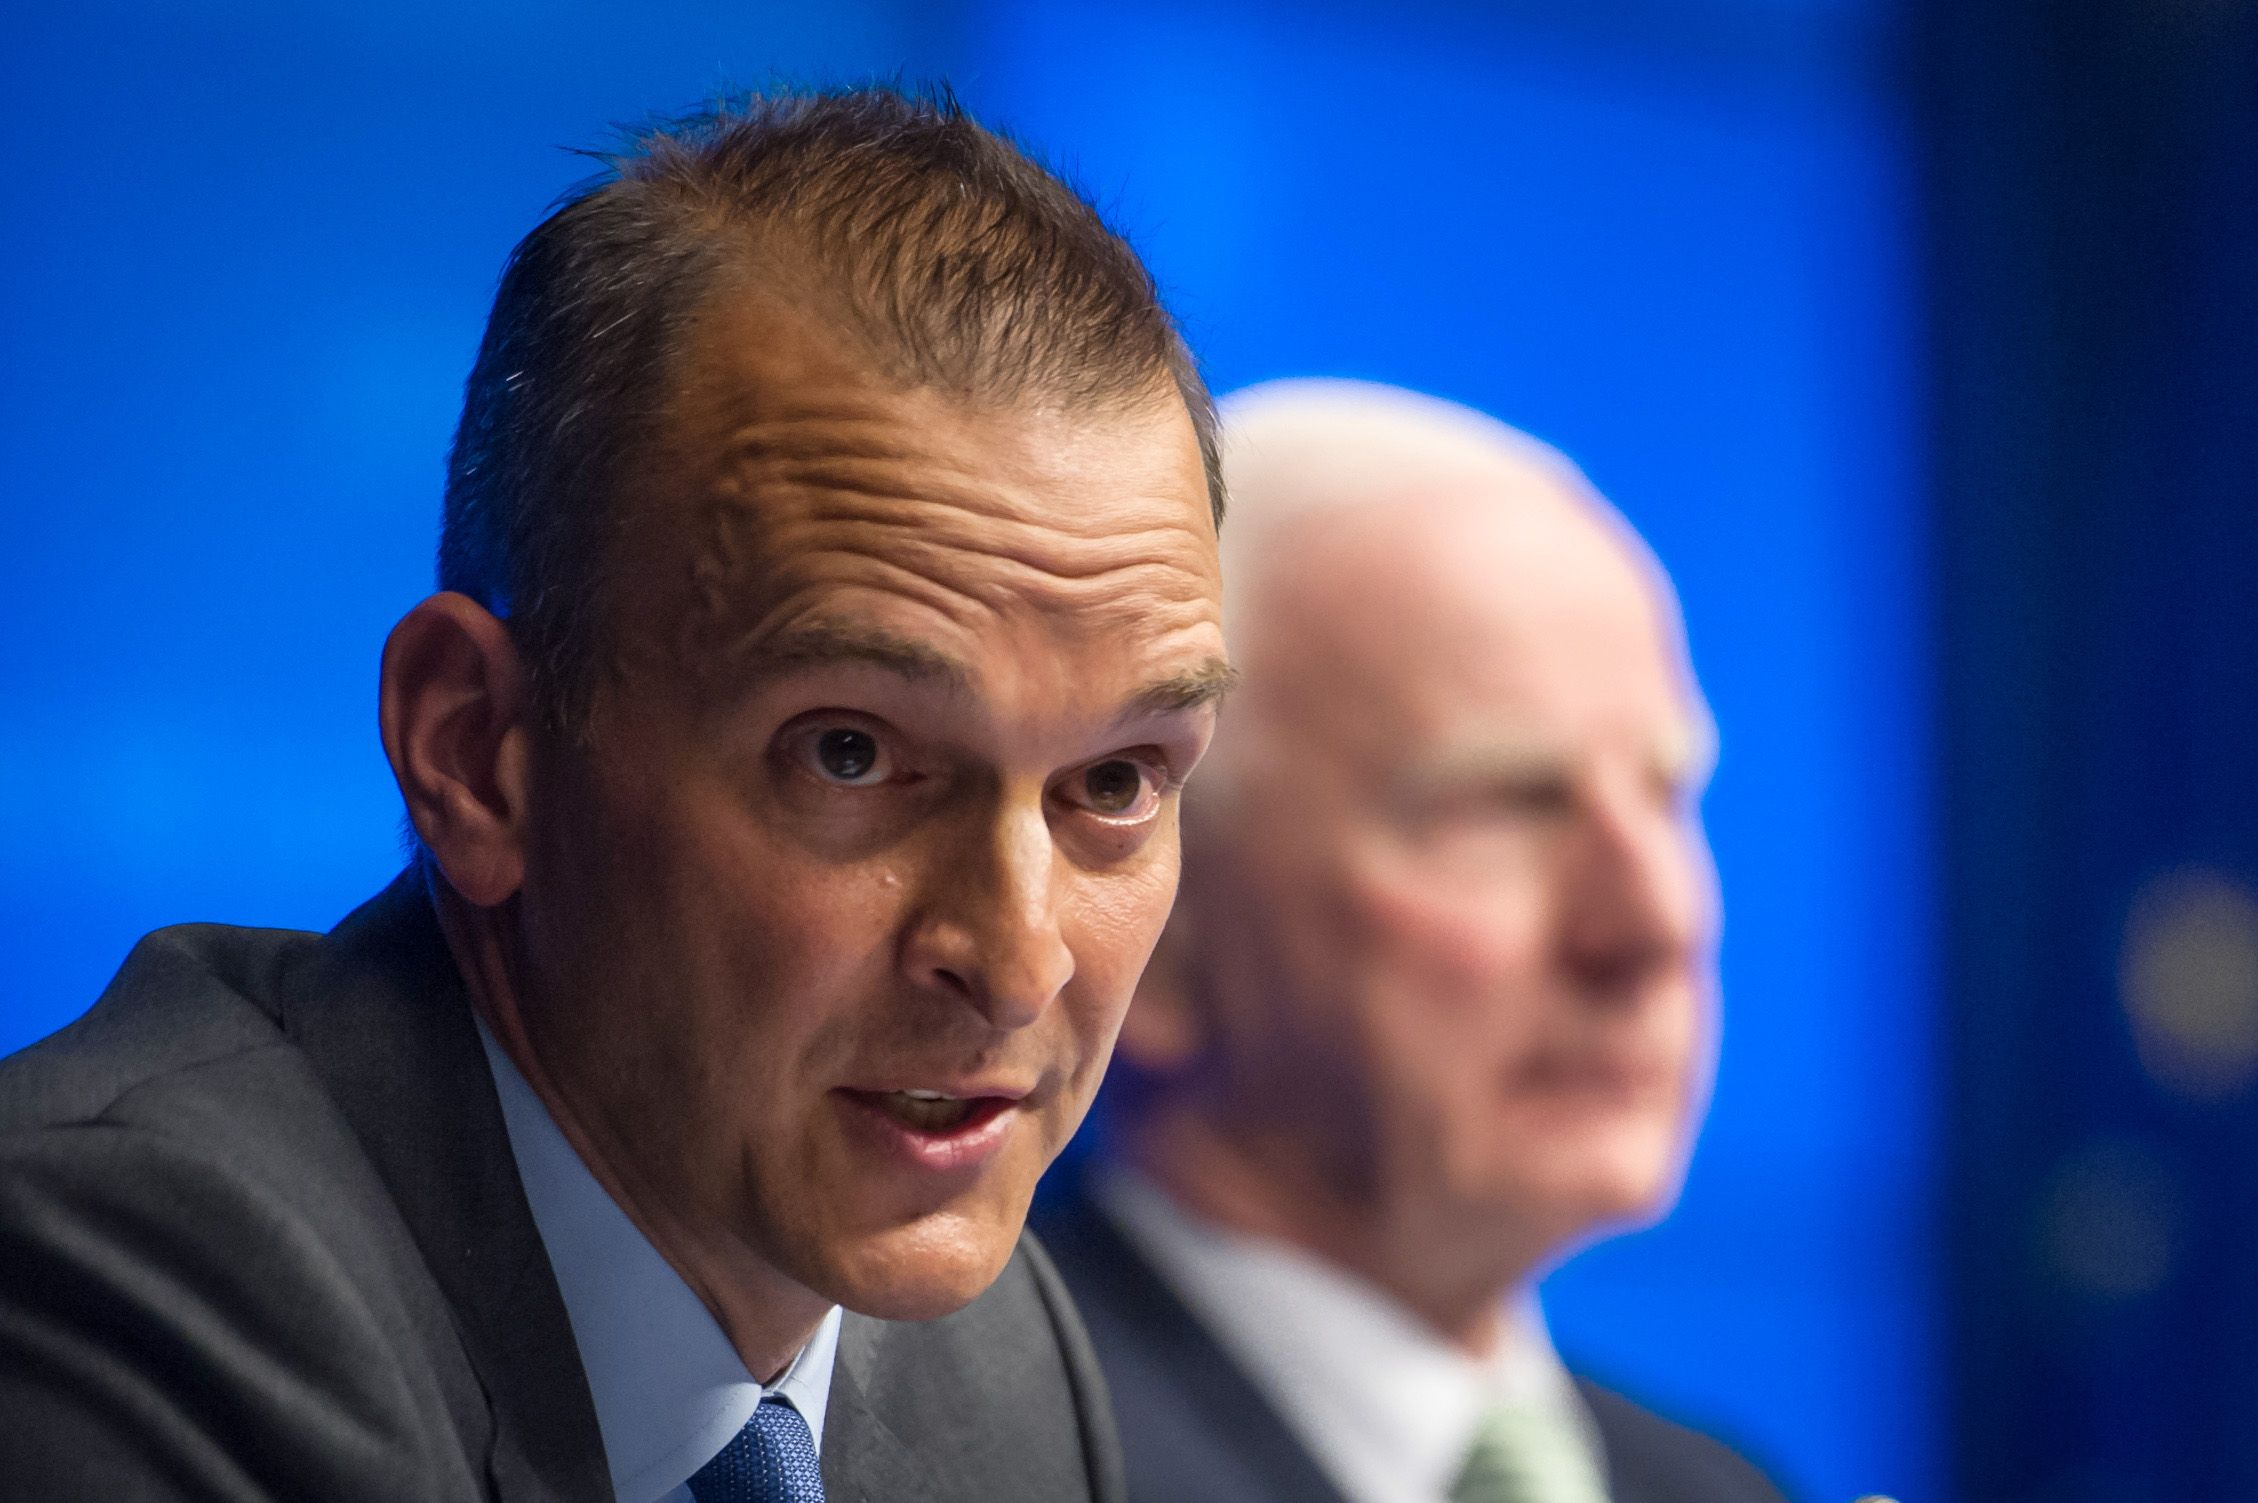 USADA chief: No time to lose for cycling on doping - Tygart the man who brought down Lance Armstrong, said Thursday March 20, 2014 that time is running out for cycling to confront its culture of doping and clean up the sport once and for all. (AP Photo/Geert Vanden Wijngaert, File)